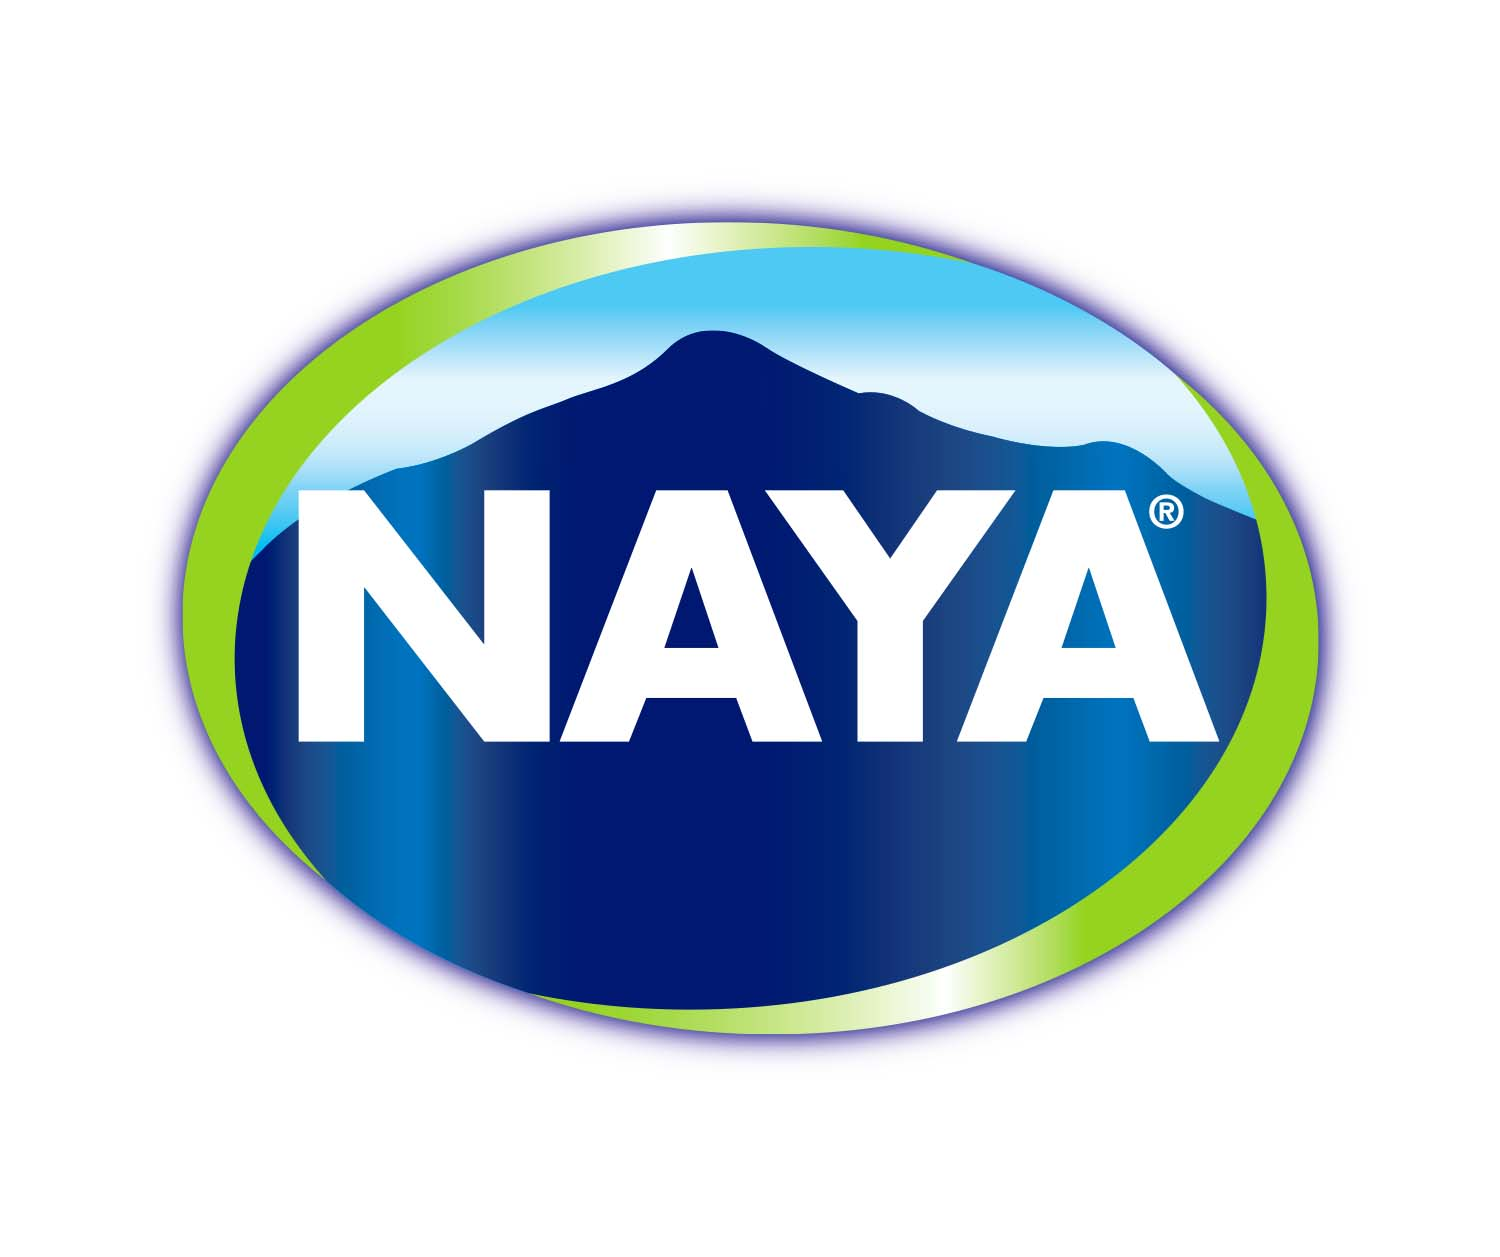 LOGO_NAYA_PLAIN_F copy